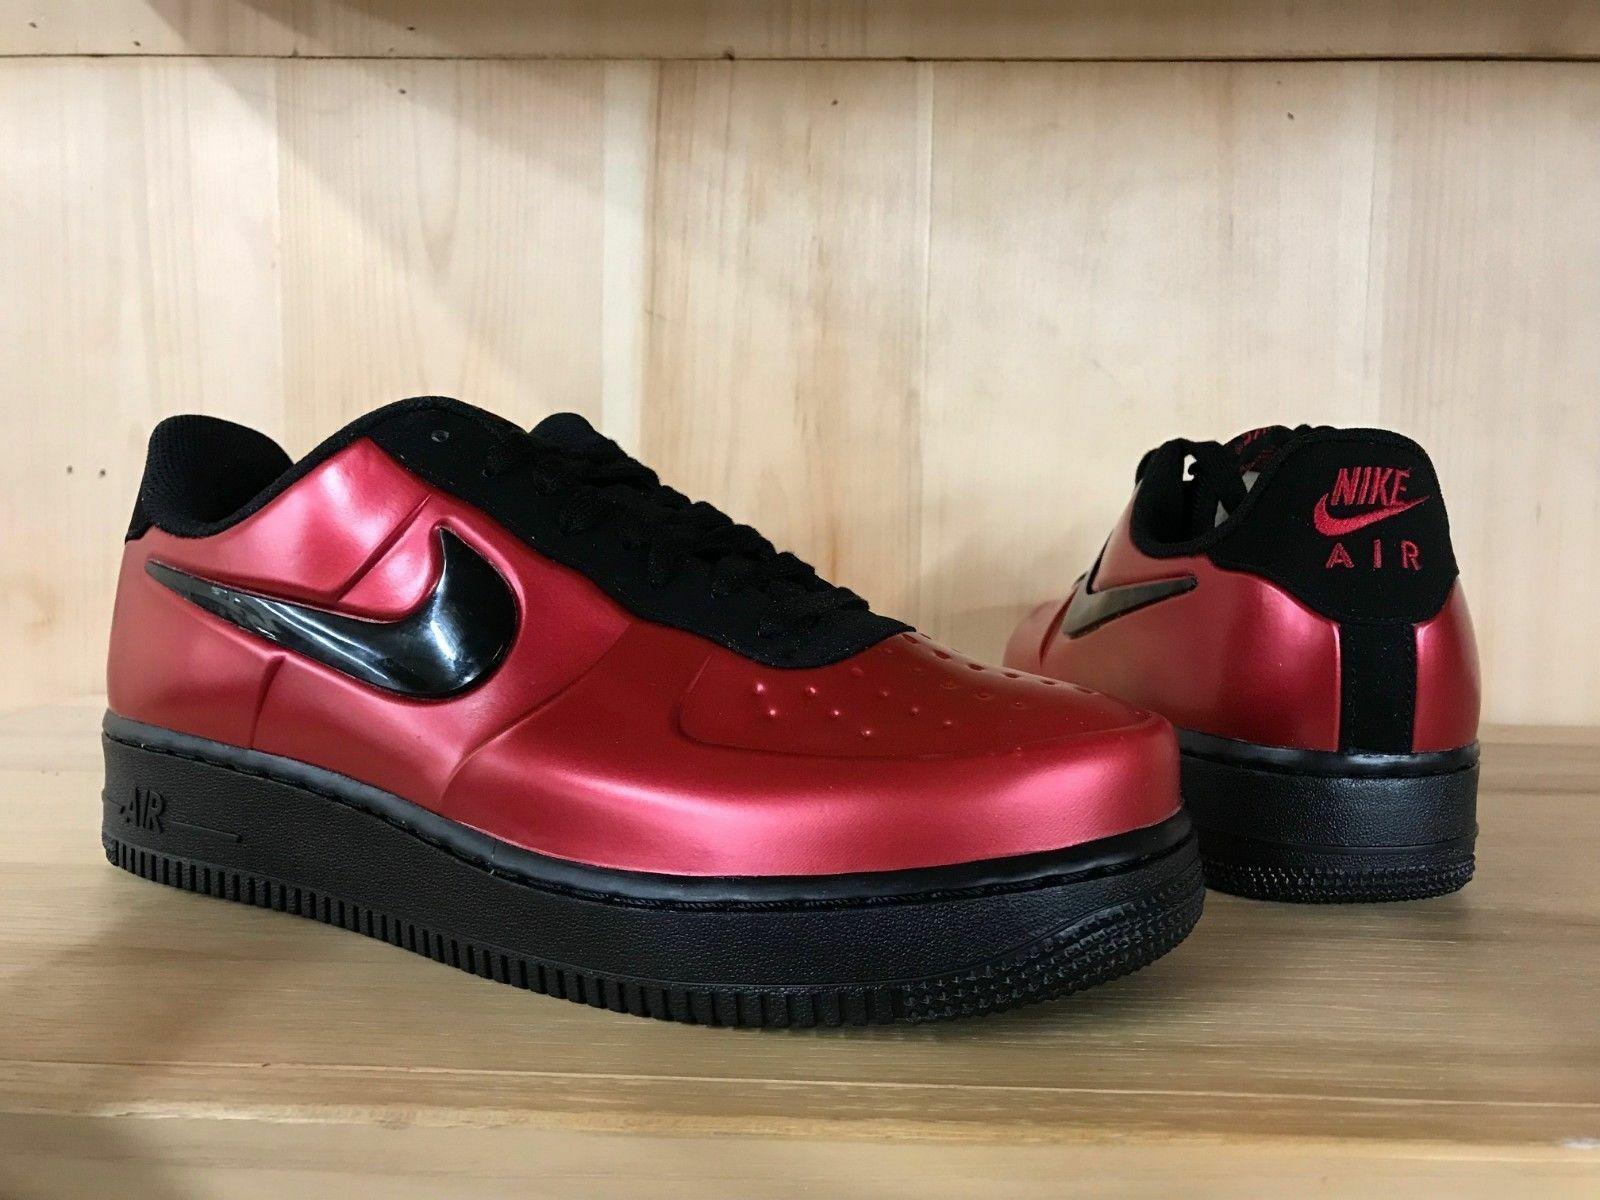 Nike Air Force One 1 Foamposite Pro Cup Sole Sole Sole Metallic Gym rot AJ3664-601 AF1 lot 567ed6